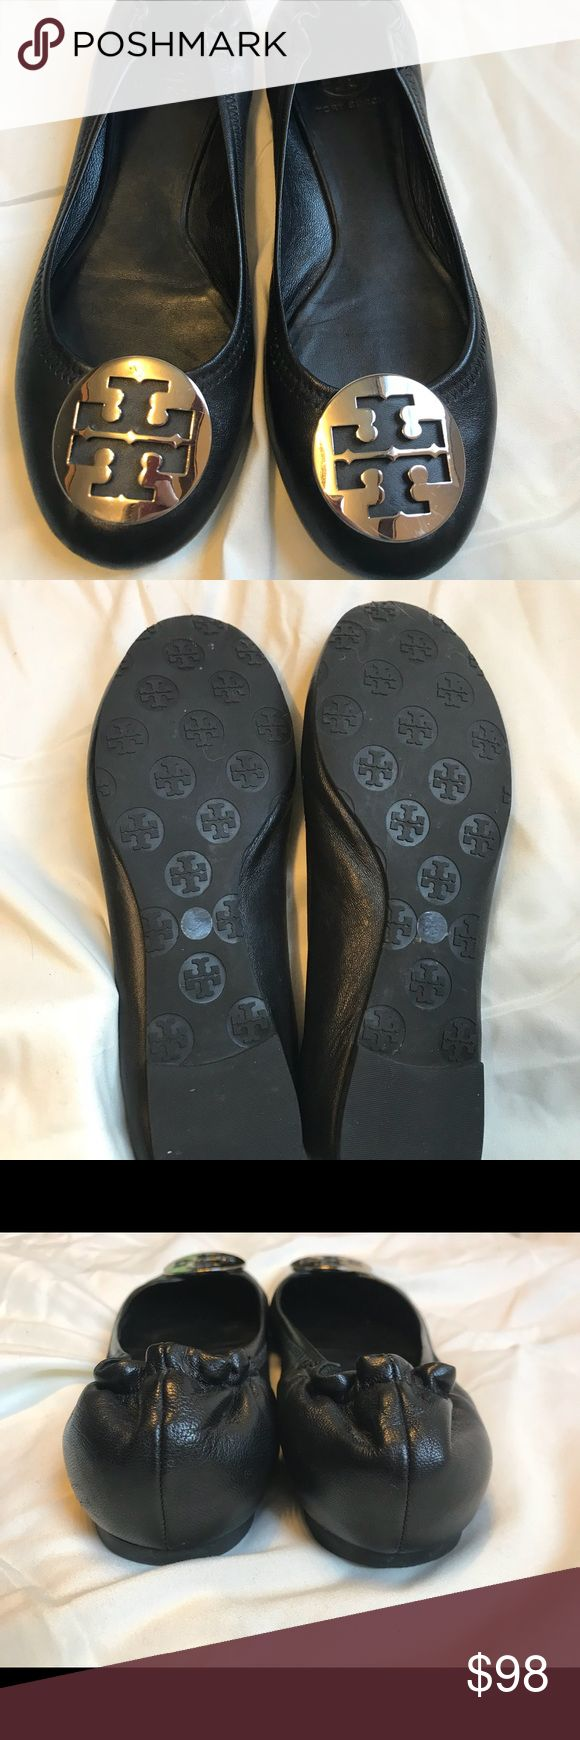 Tory Burch ballet flats Tory Burch genuine leather ballet flats size 9 Good  condition but a